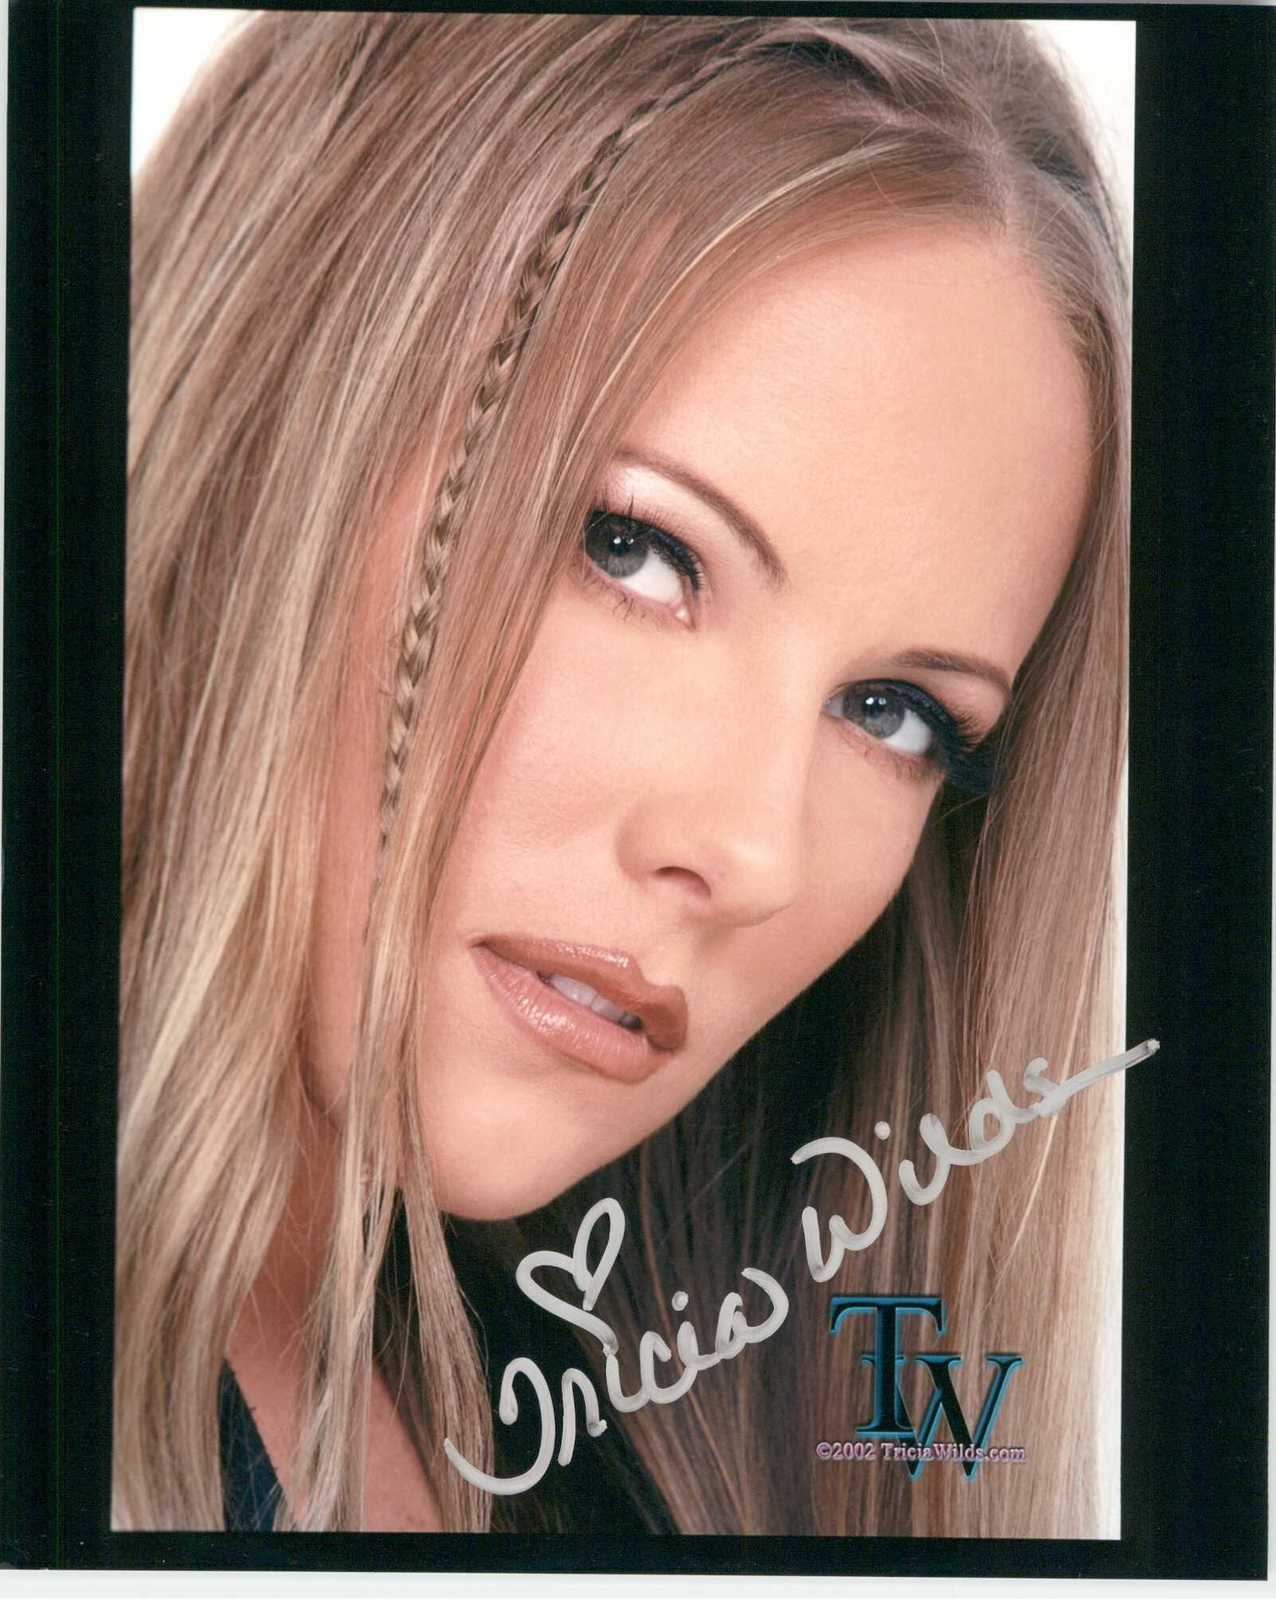 Primary image for Tricia Wilde Signed Autographed Glossy 8x10 Photo